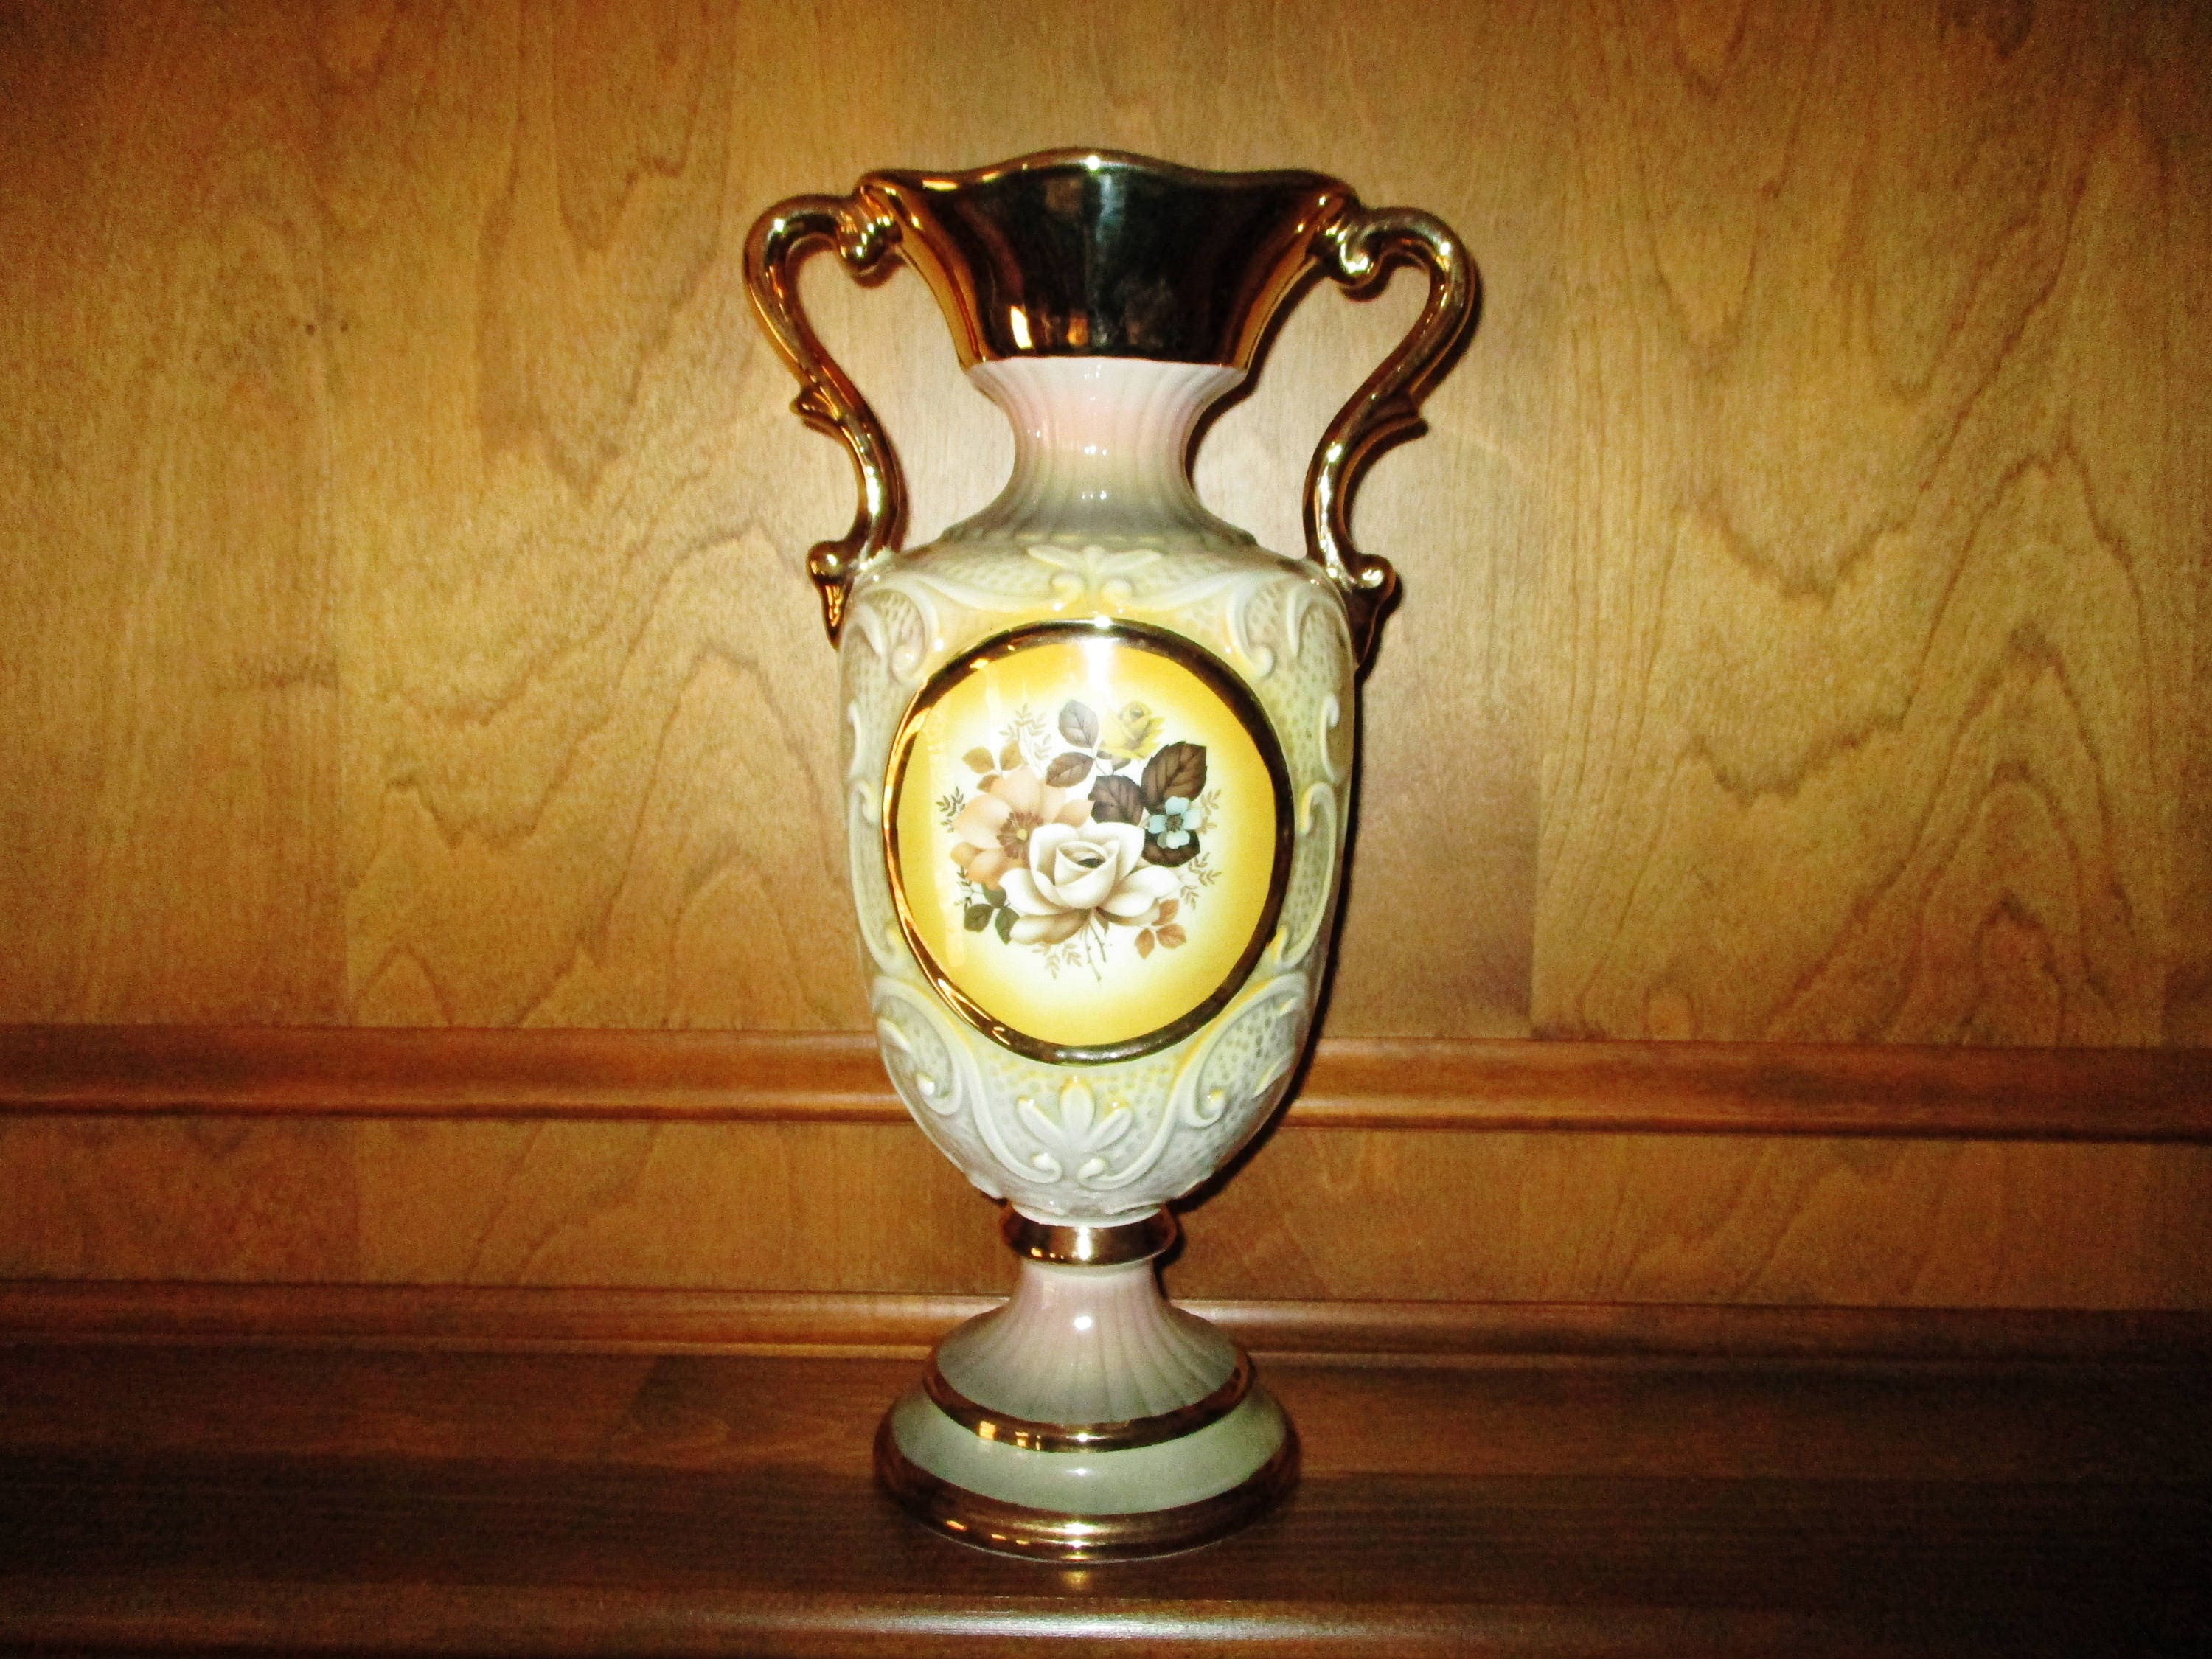 Ceramica le torri golden flower vase made in italy zoom reviewsmspy